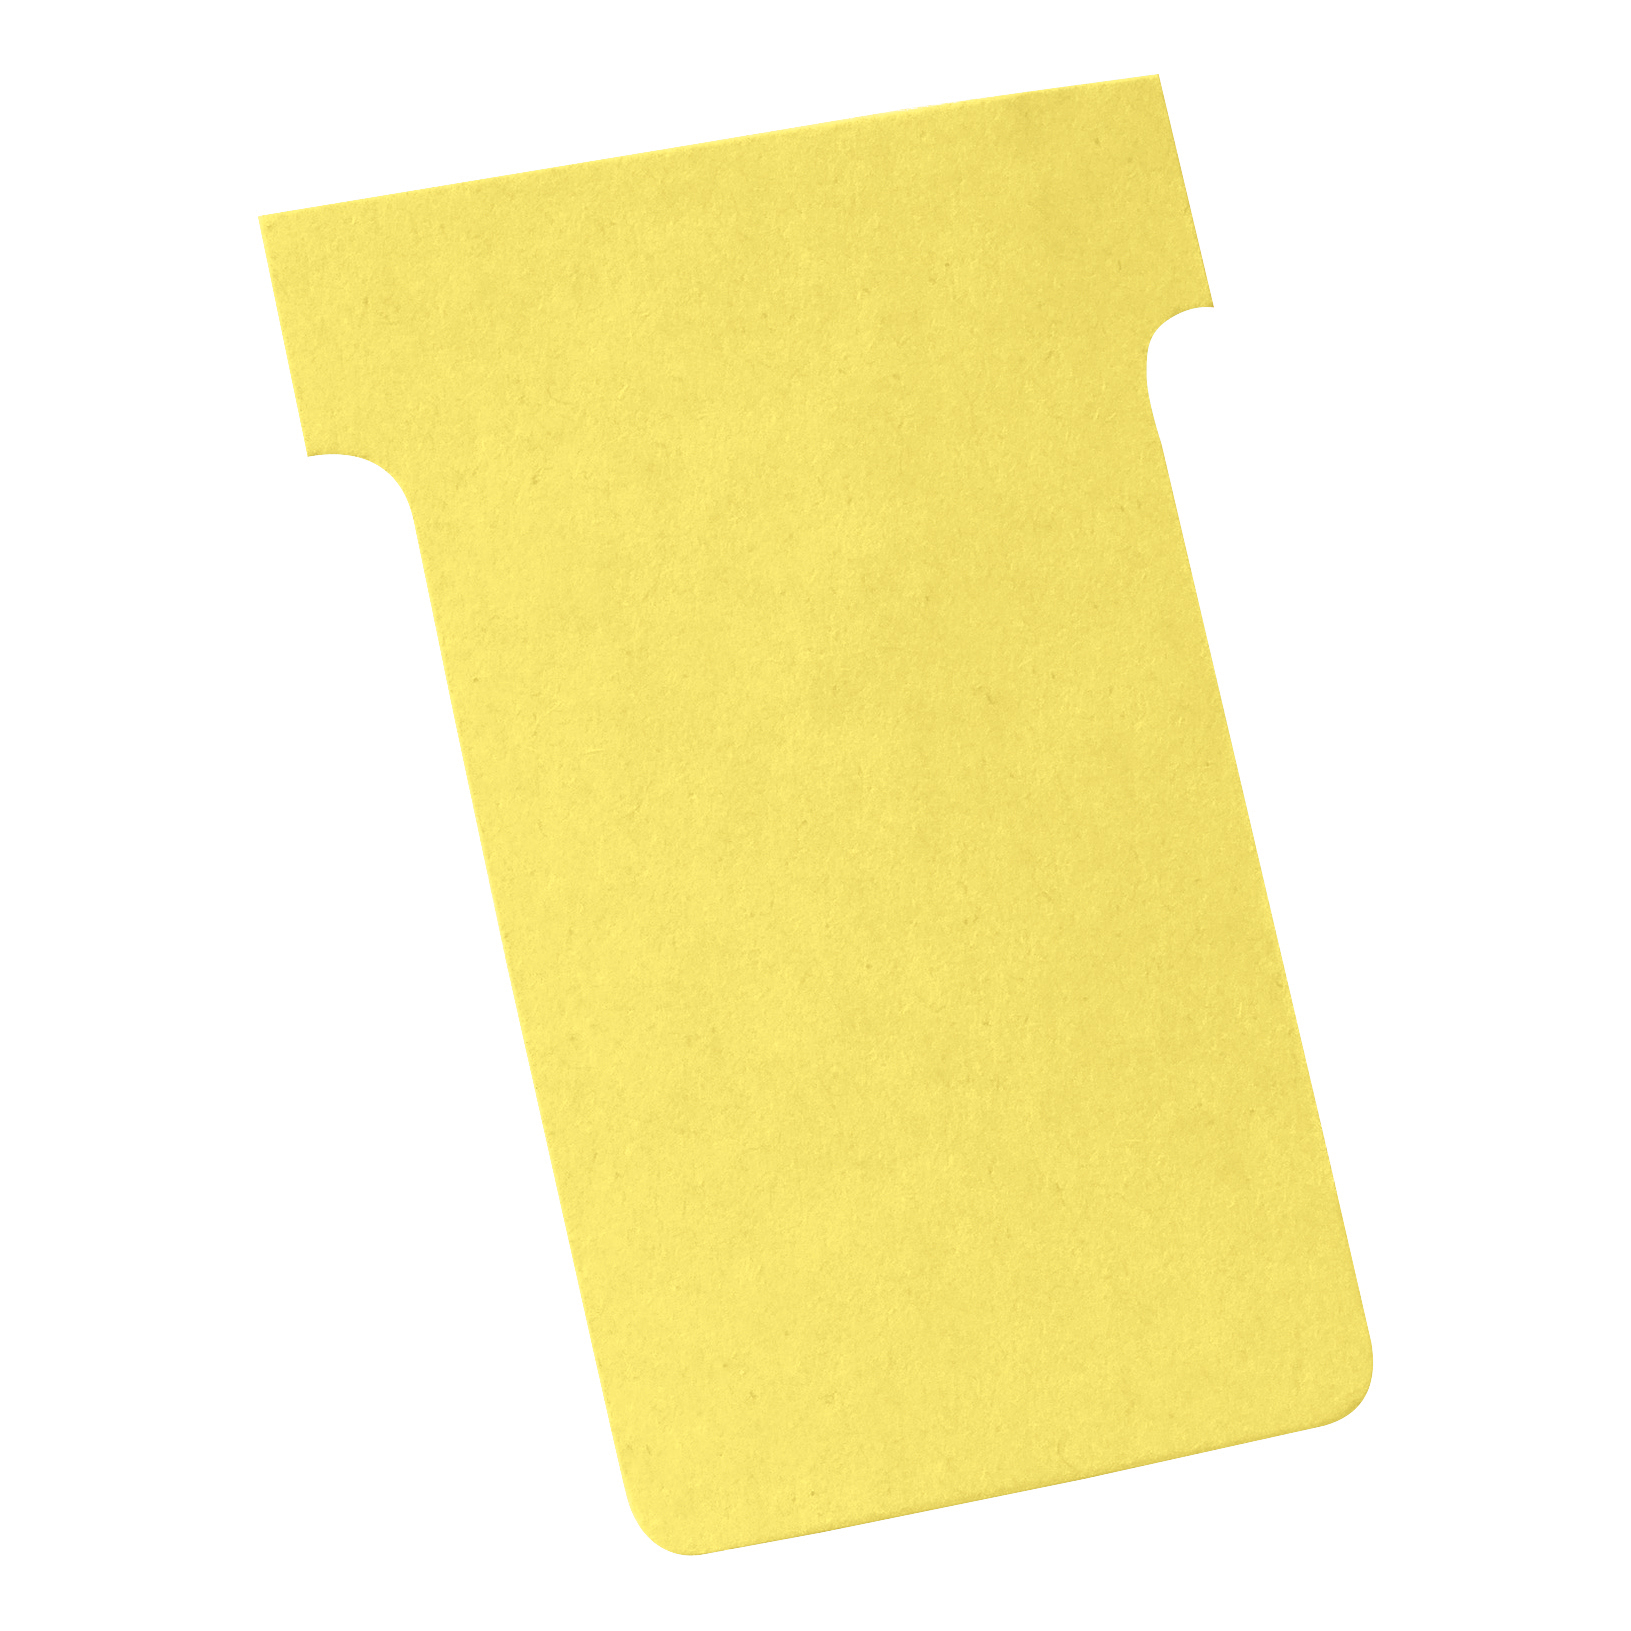 T Cards Nobo T-Cards 160gsm Tab Top 15mm W60x Bottom W48.5x Full H85mm Size 2 Yellow Ref 2002004 Pack 100